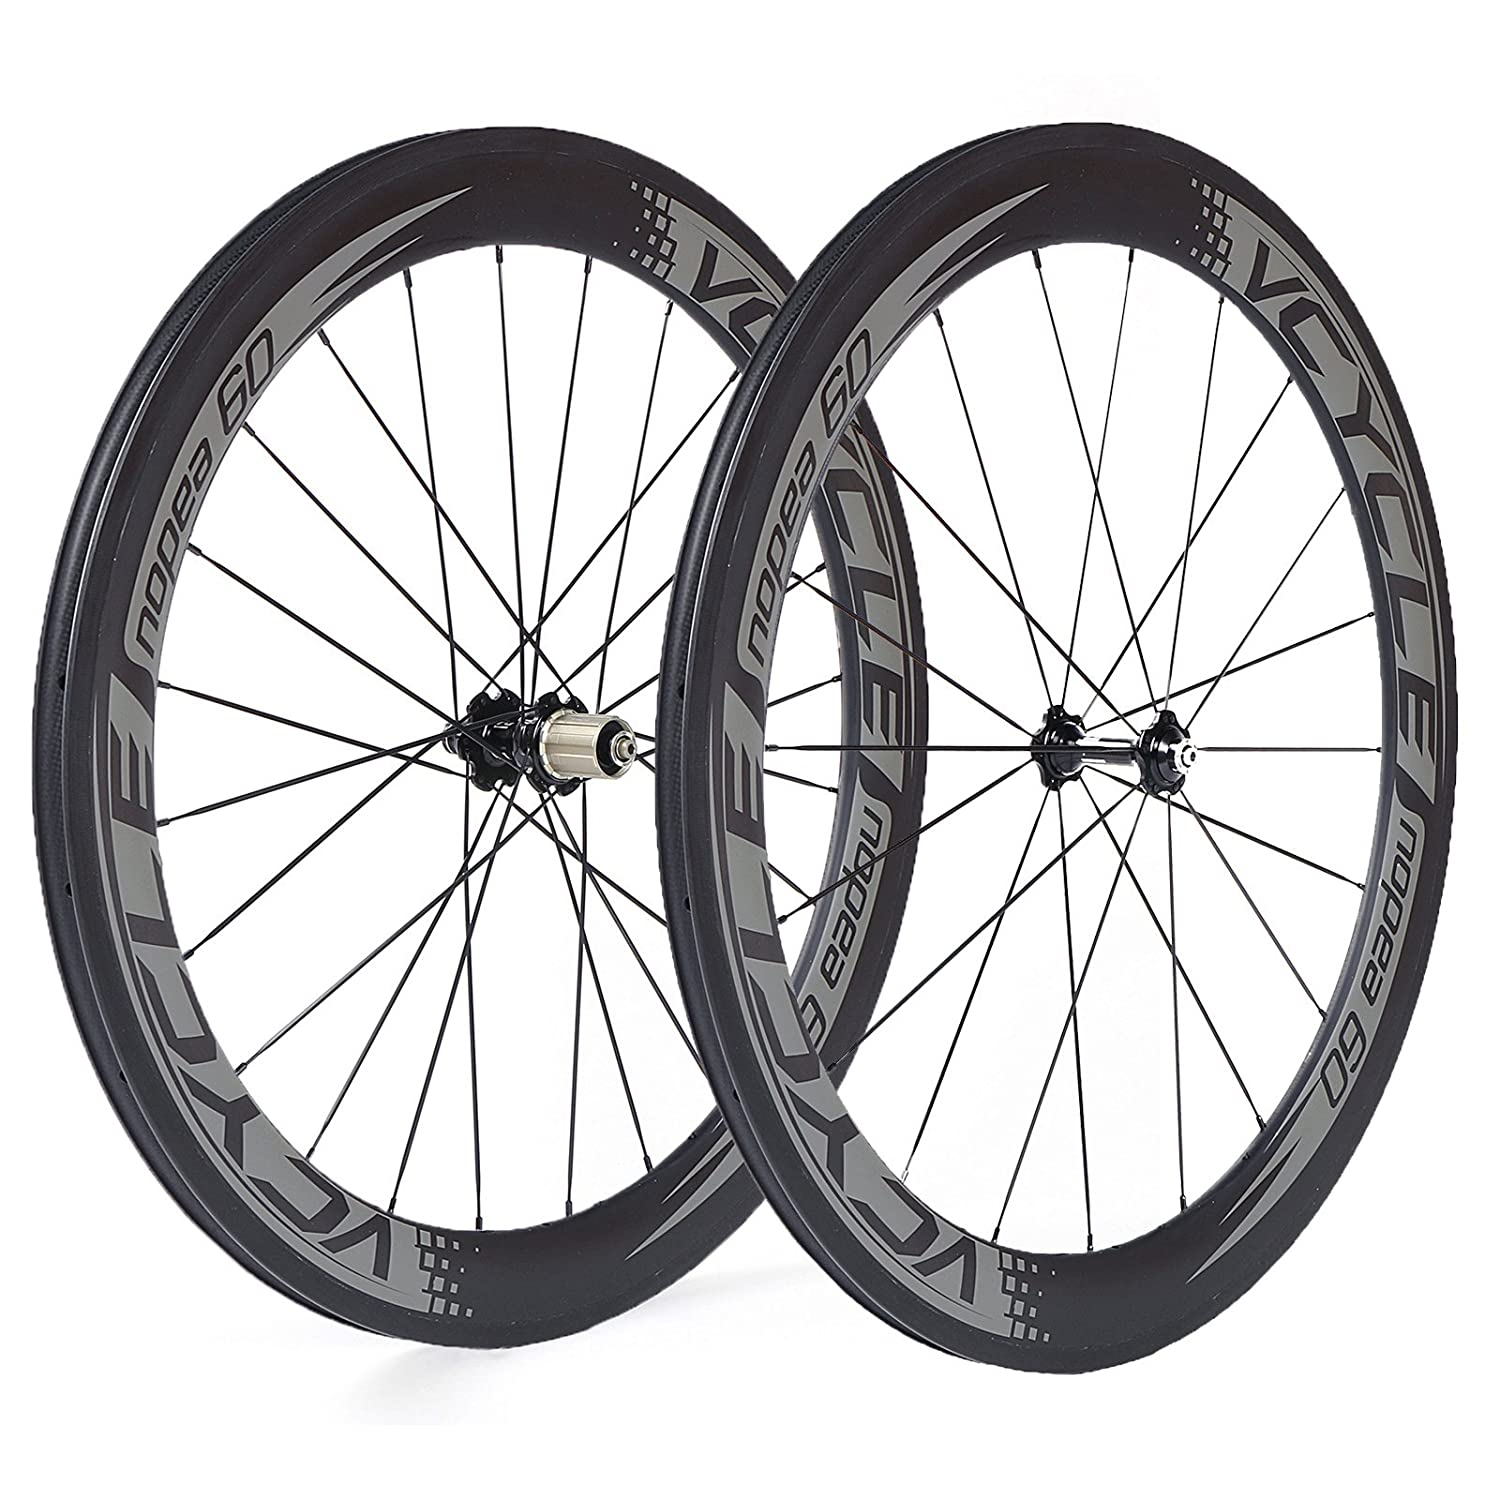 vcycle nopea 700 Cカーボンレーシングロード自転車ホイールセットクリンチャー60 mm深23 mm幅1785 G Shimano SRAM O 8 / 9 / 10 / 11スピード B01N9KGHSW Front&Rear Wheel Front&Rear Wheel